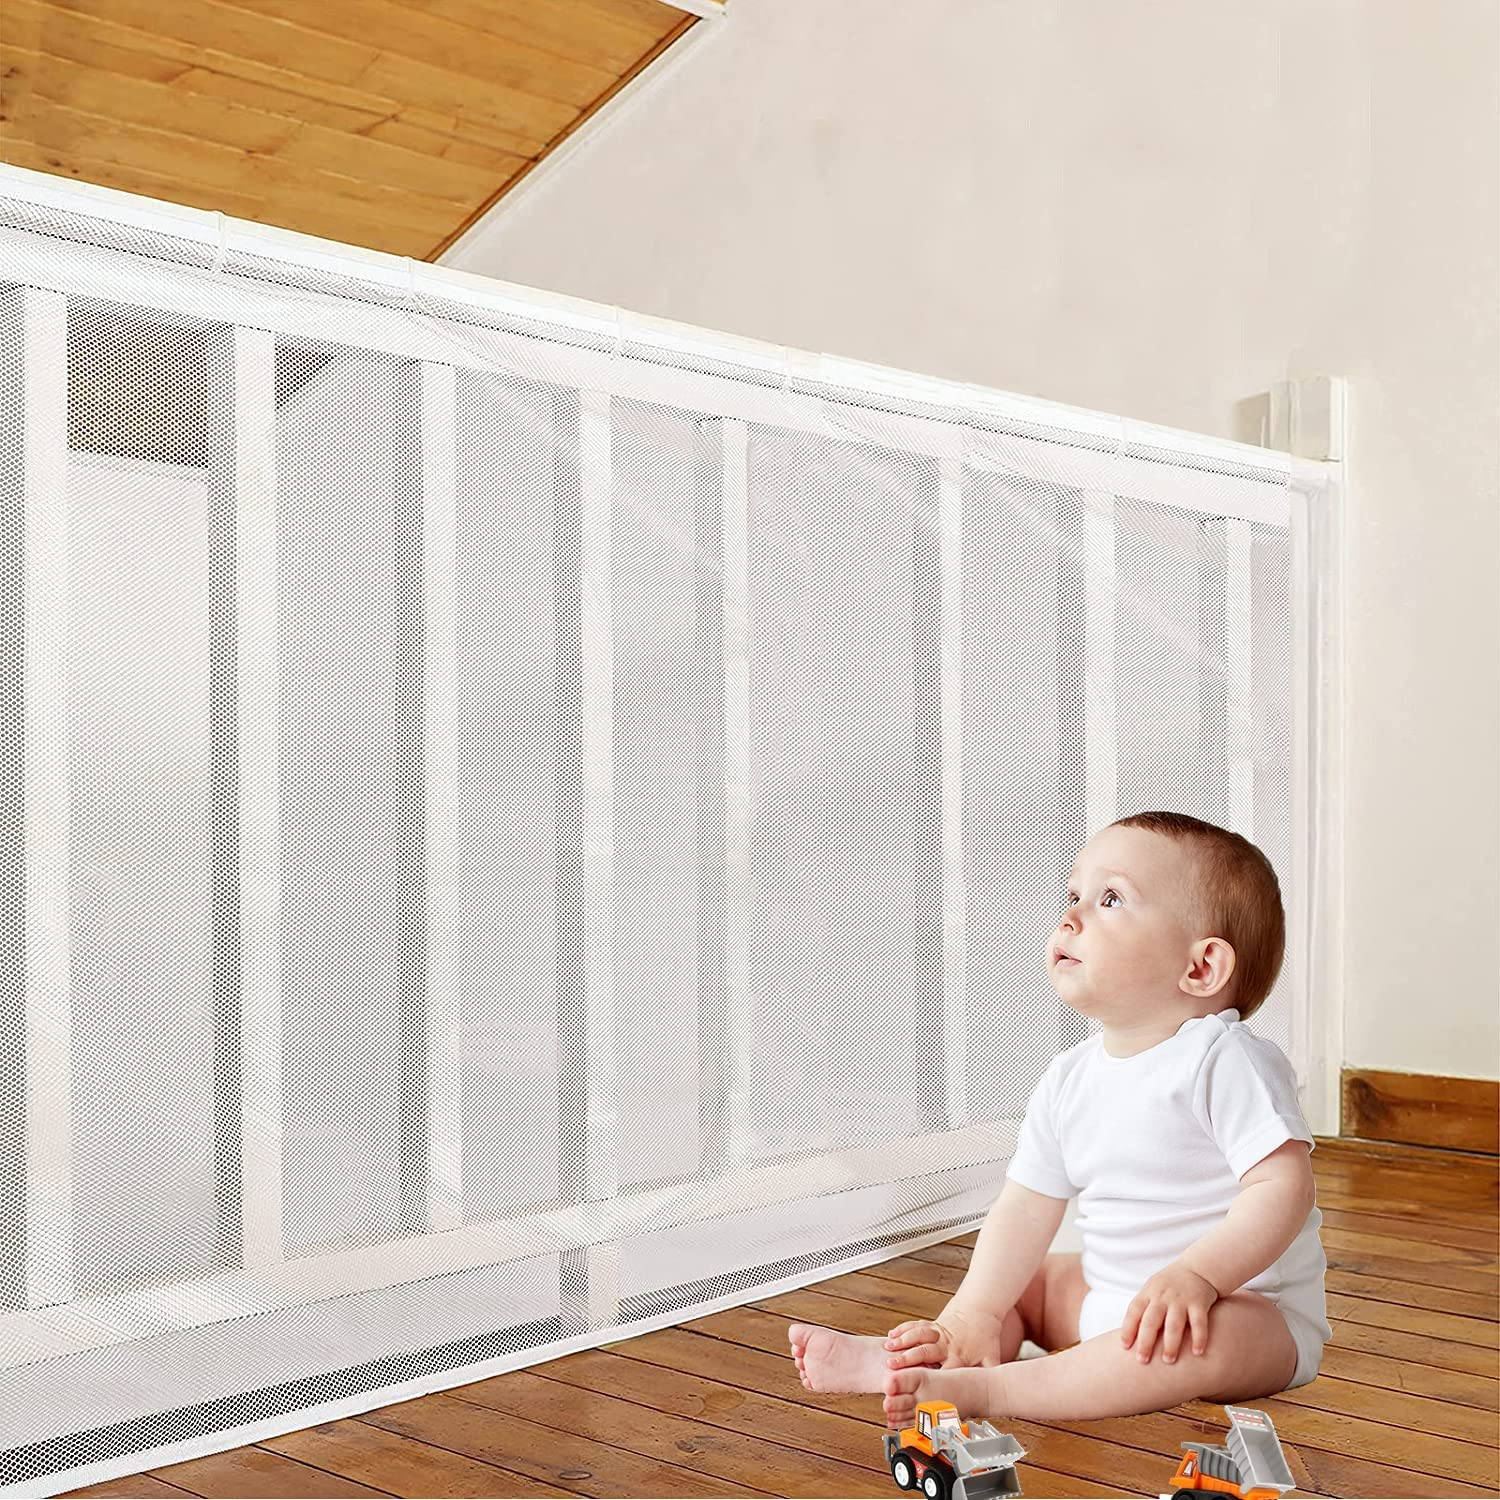 Banister Guard, Child Safety Net 10ft x 2.5ft, Baby Proofing Stairway Net, Balcony Banister Guard, Child Proof Stair Guards Mesh, Use for Kids Pets Toys Safety